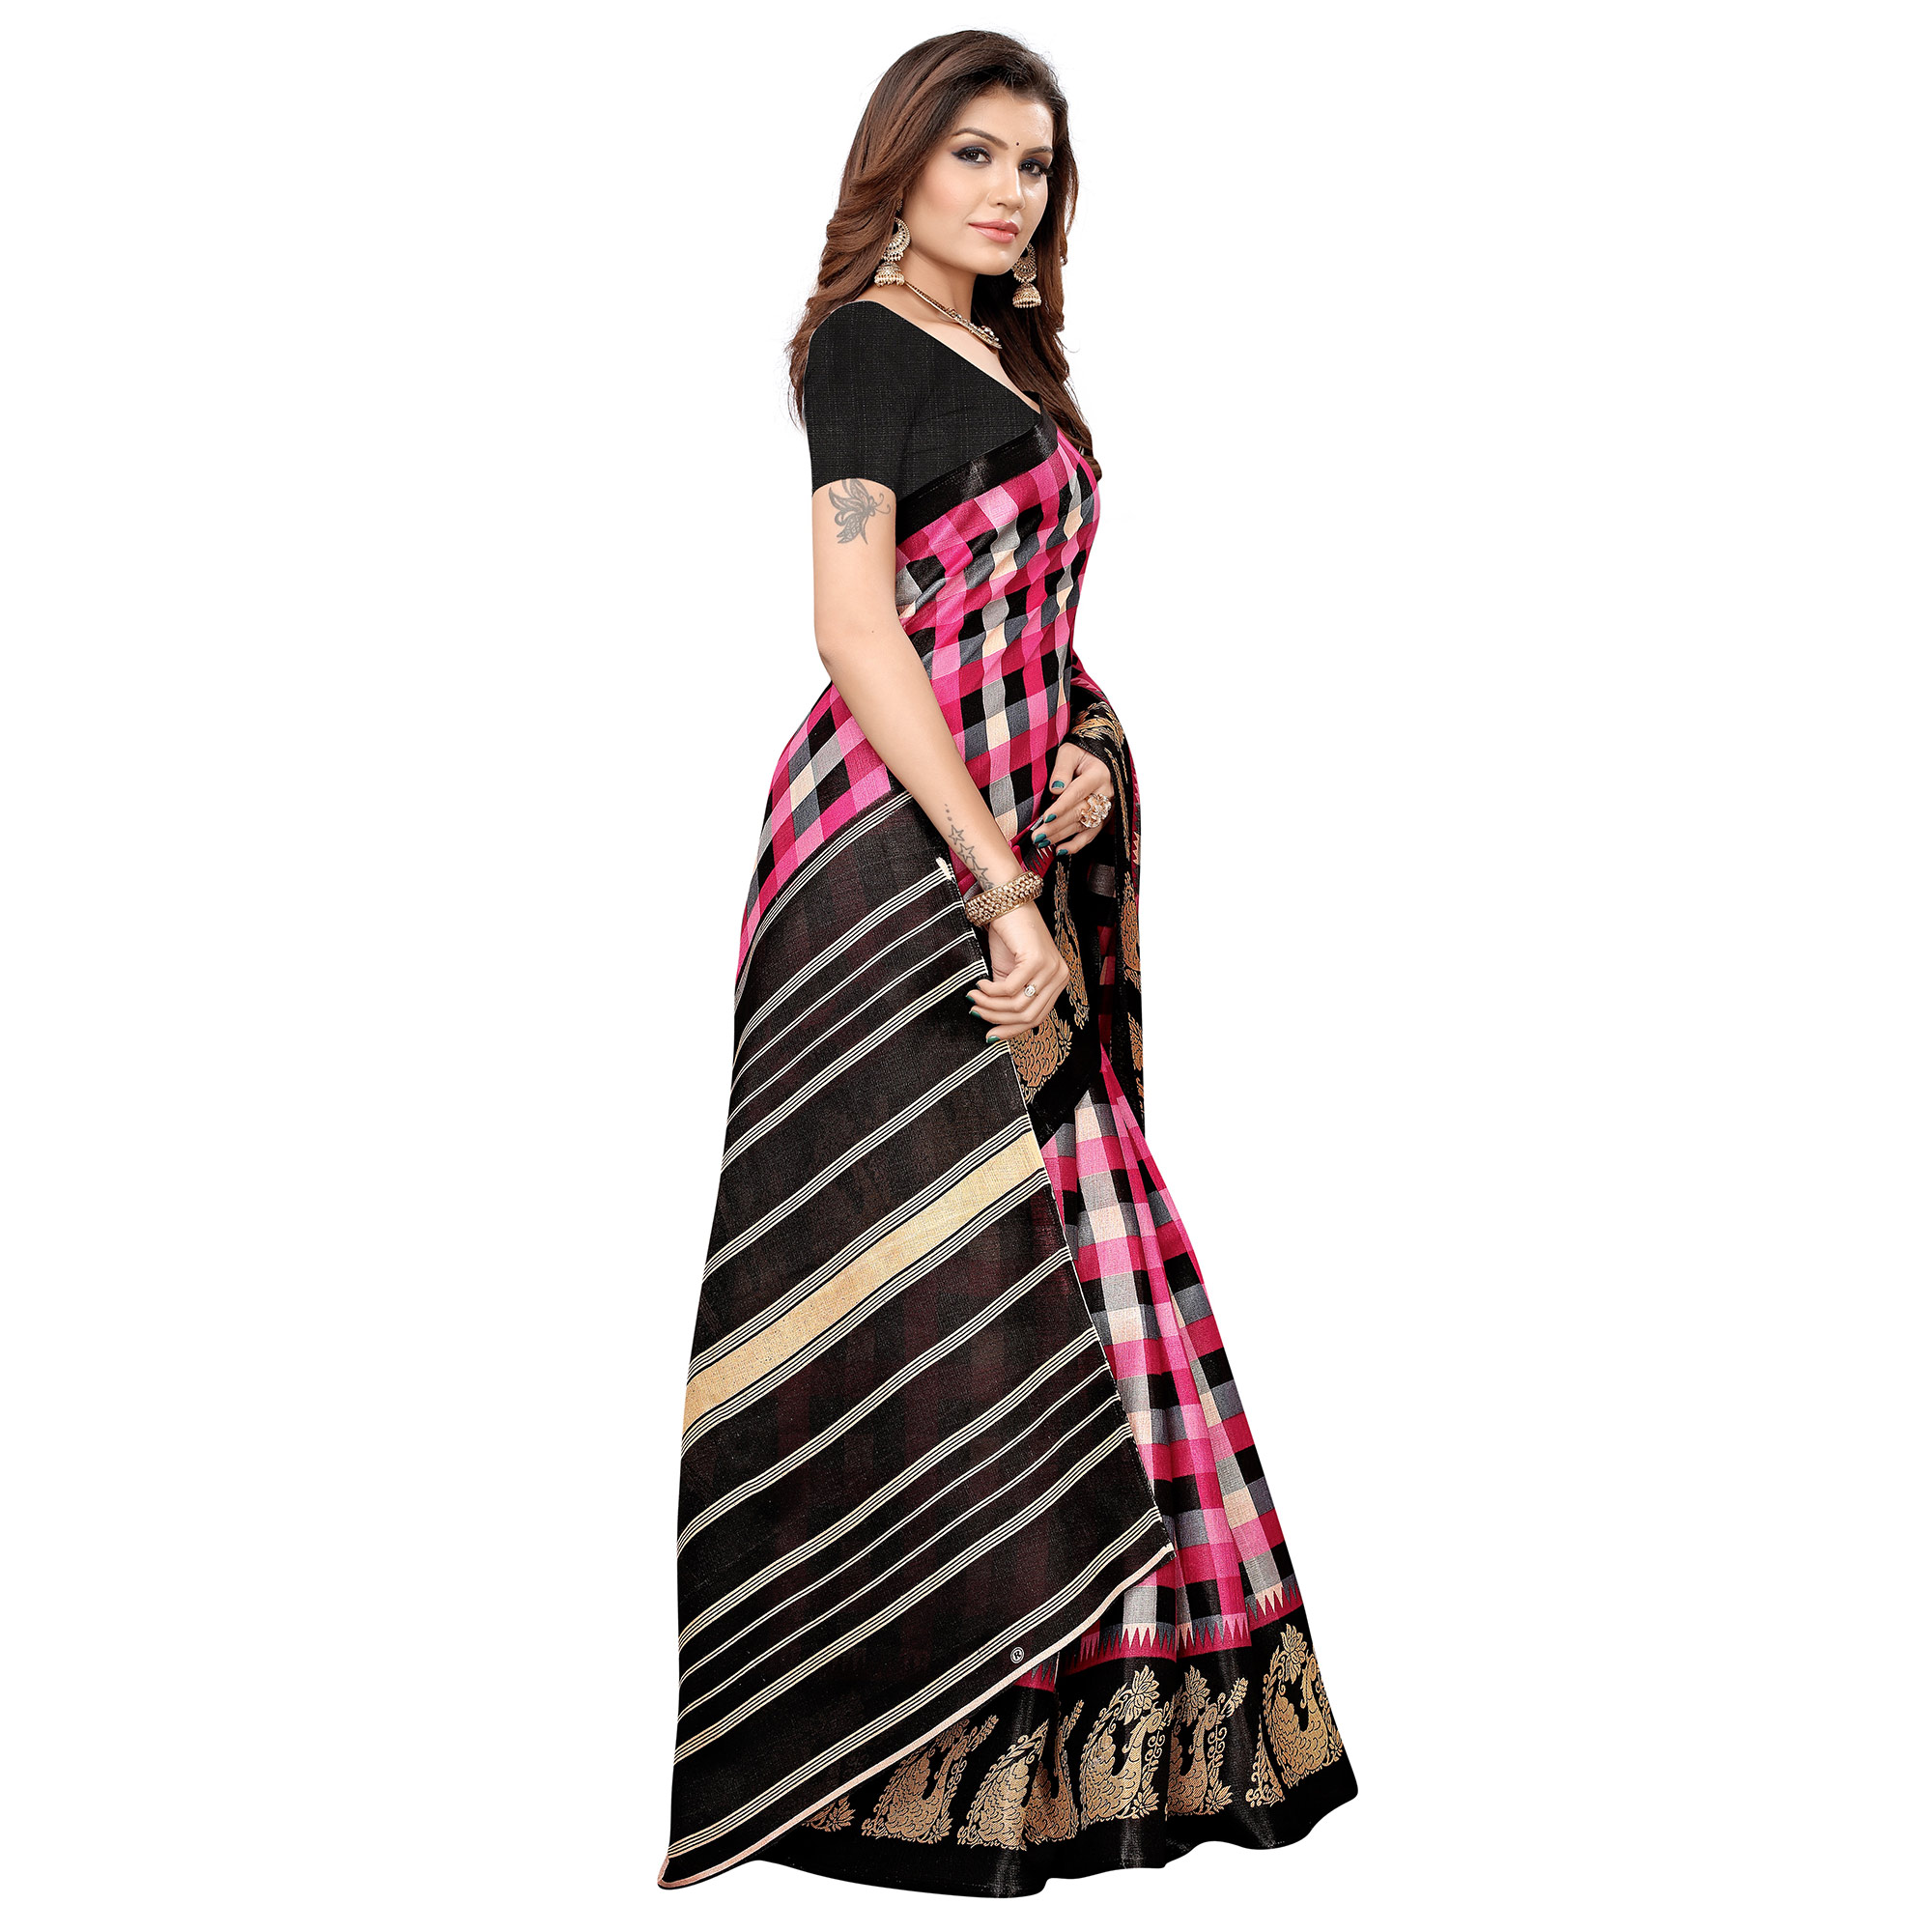 Blissful Pink-Black Colored Casual Printed Khadi Silk Saree